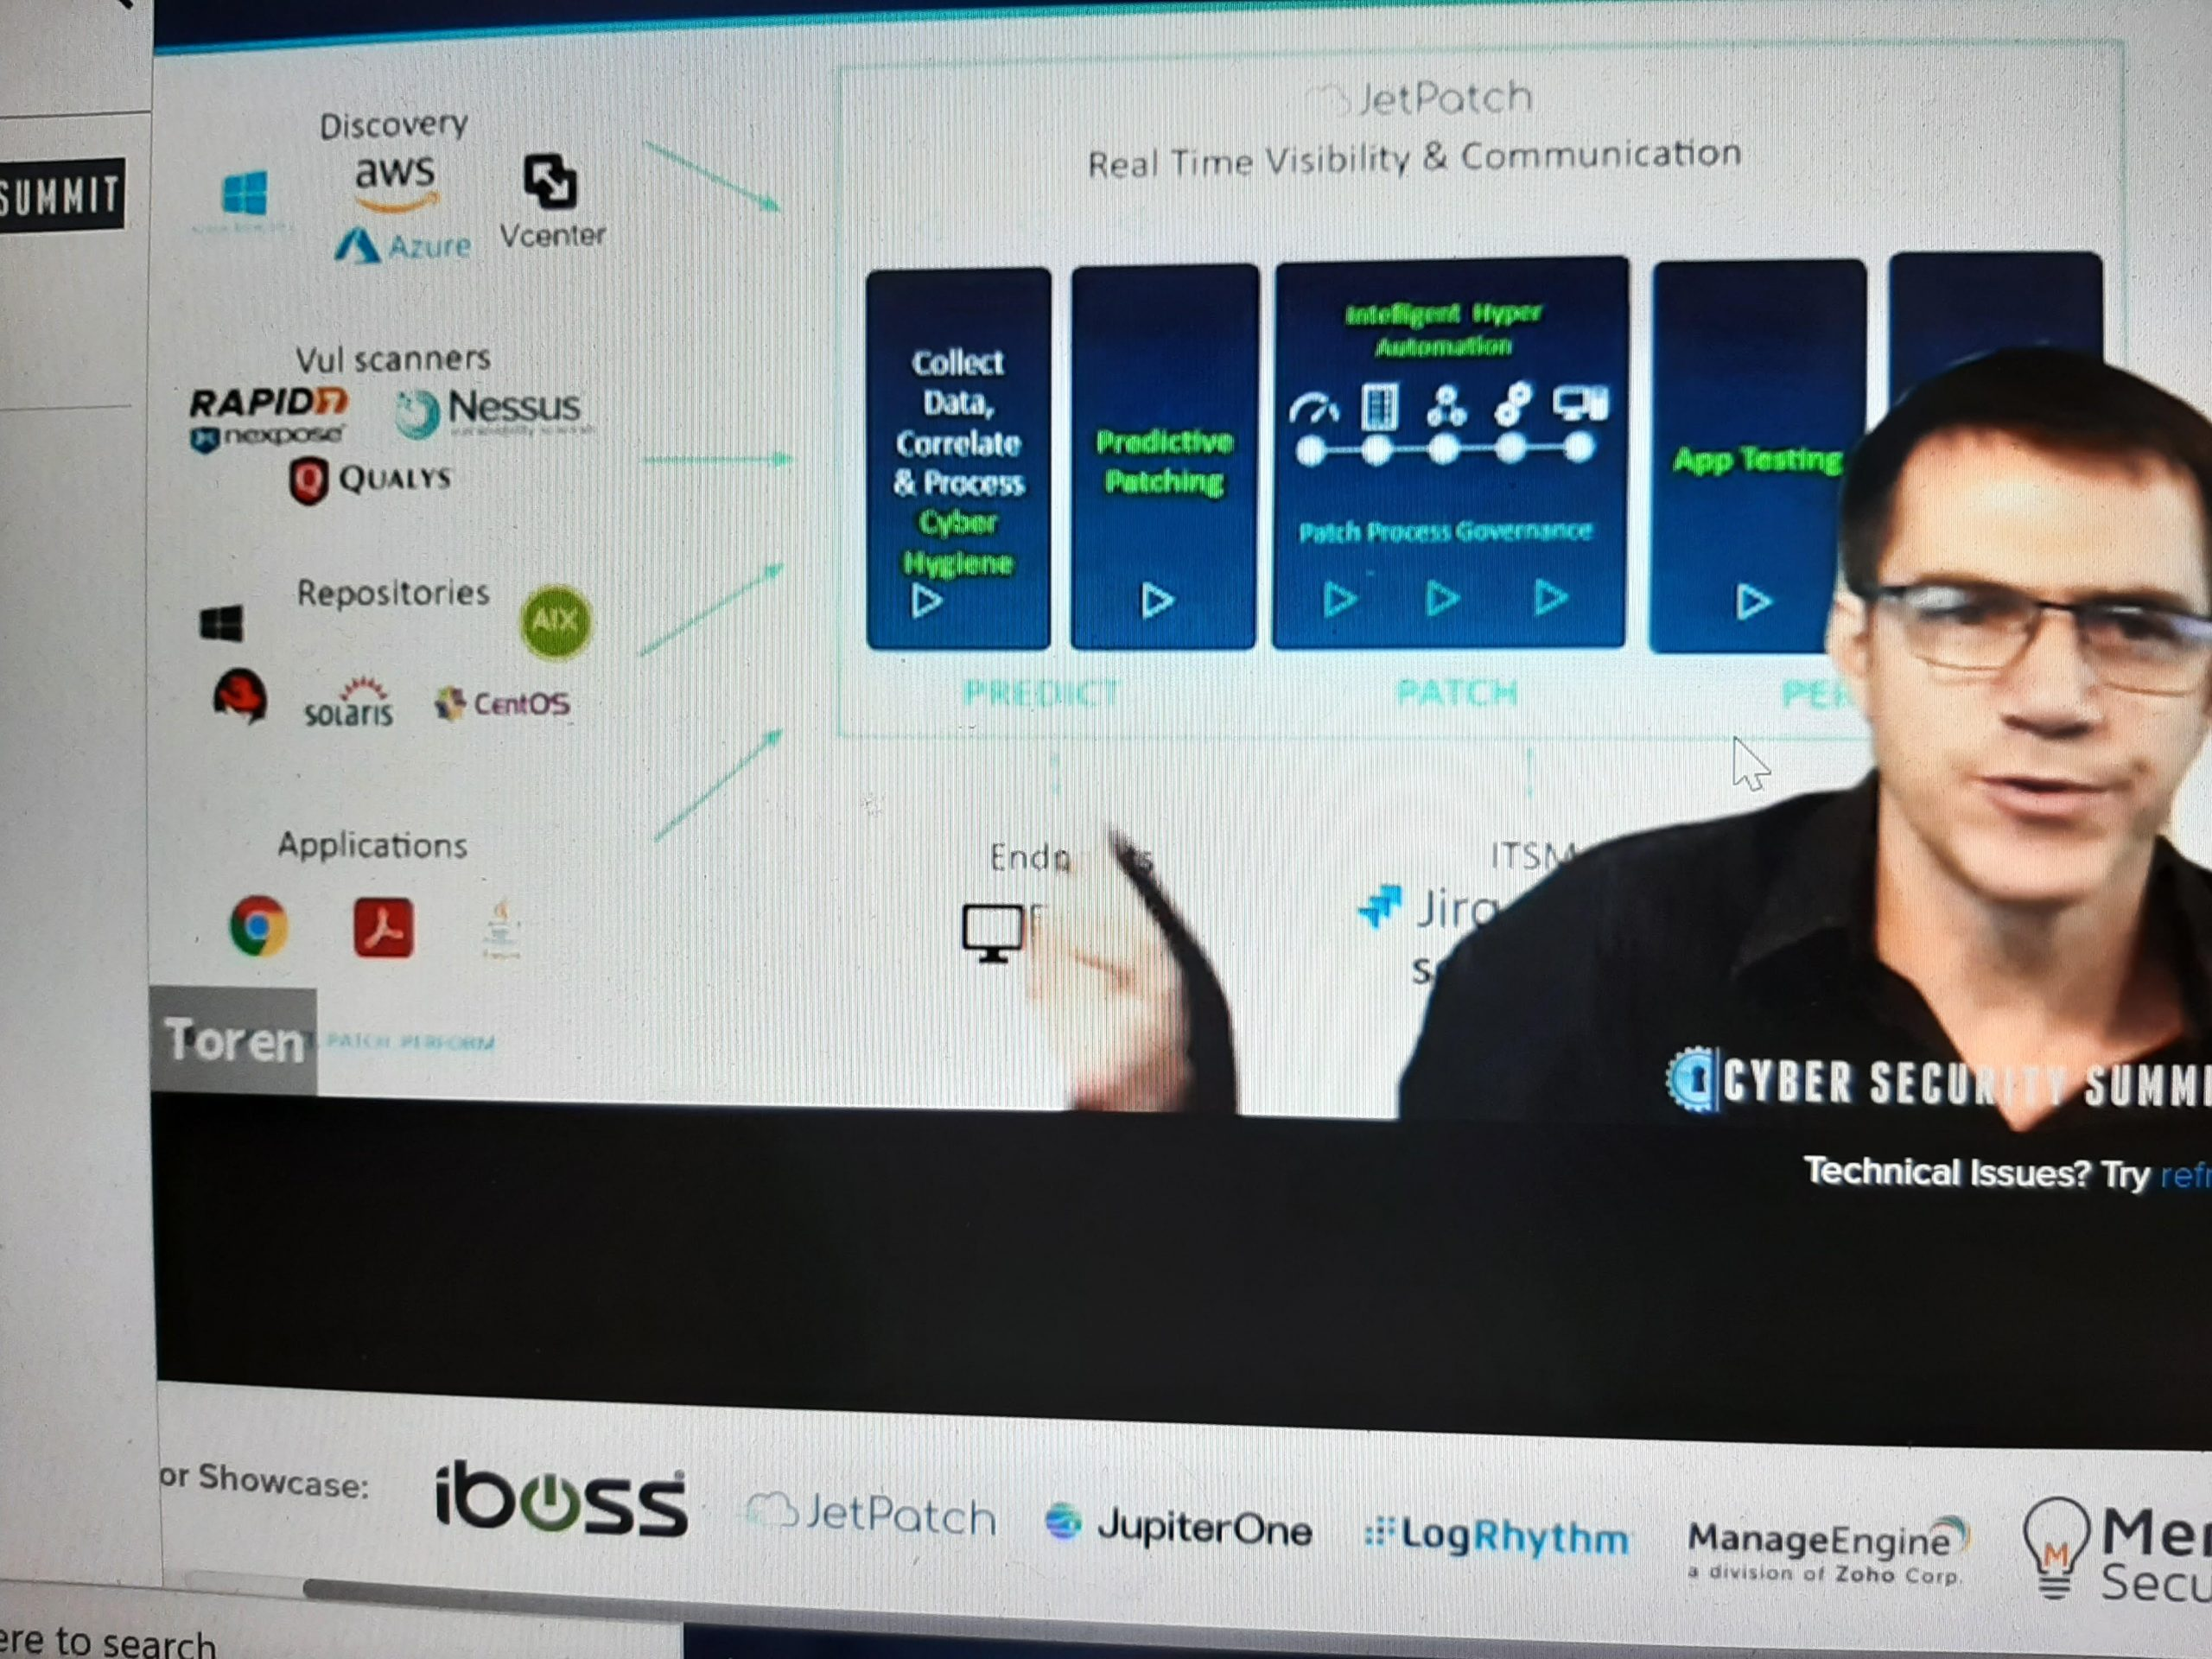 Patching - Cyber Security Summit Presentation